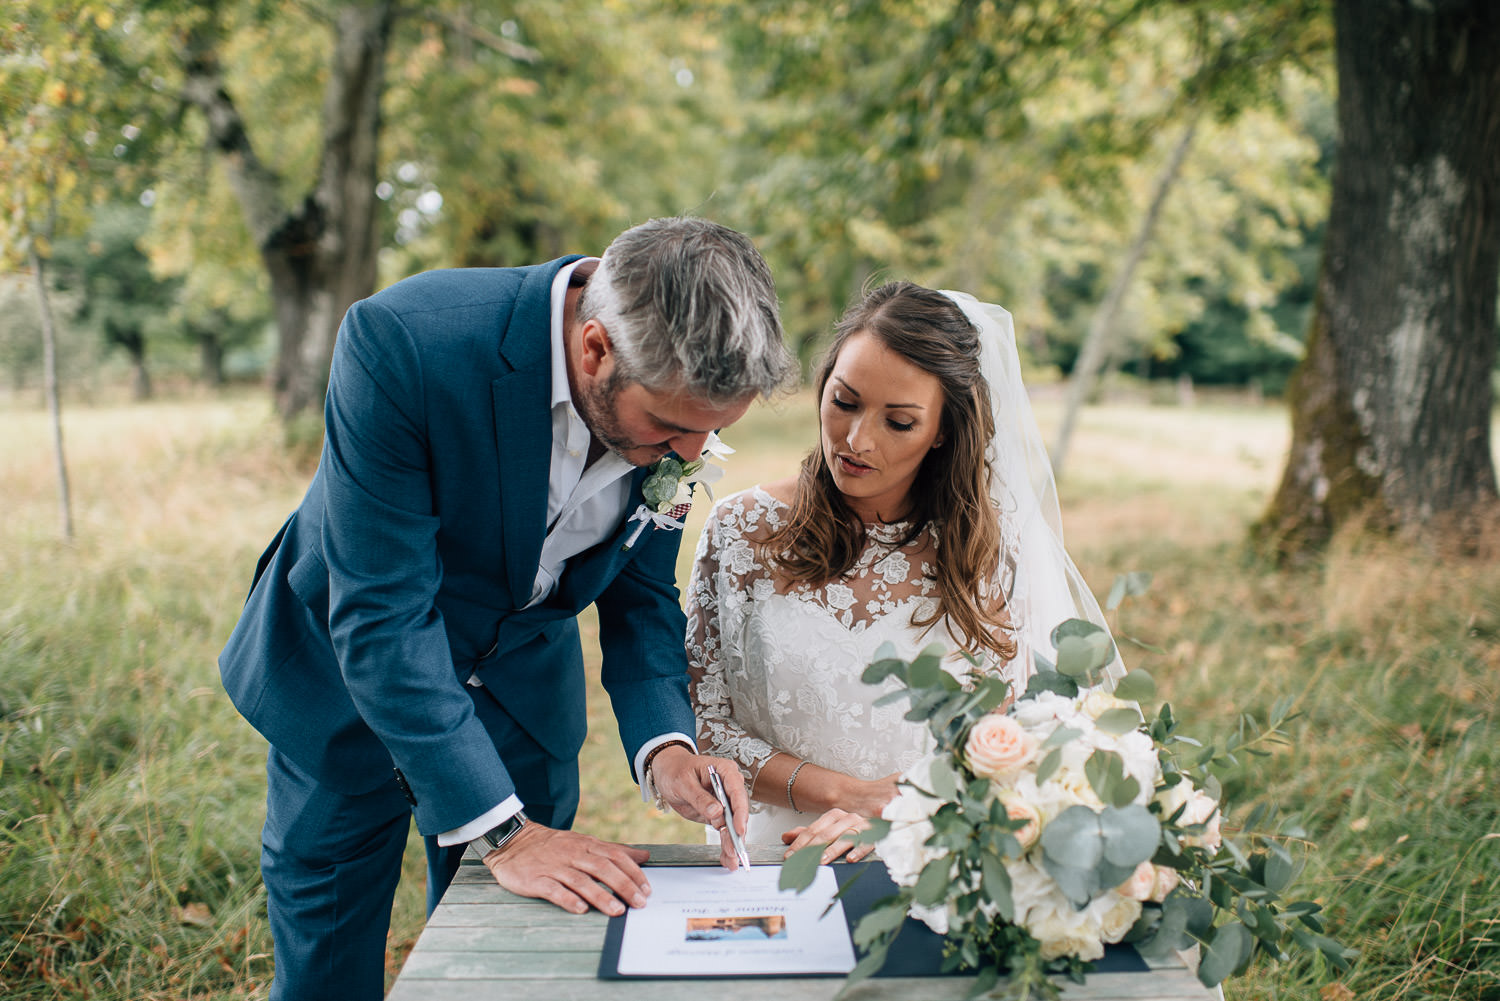 Signing of the register in chateau de la bourlie wedding by destination wedding photographer the shannons photography